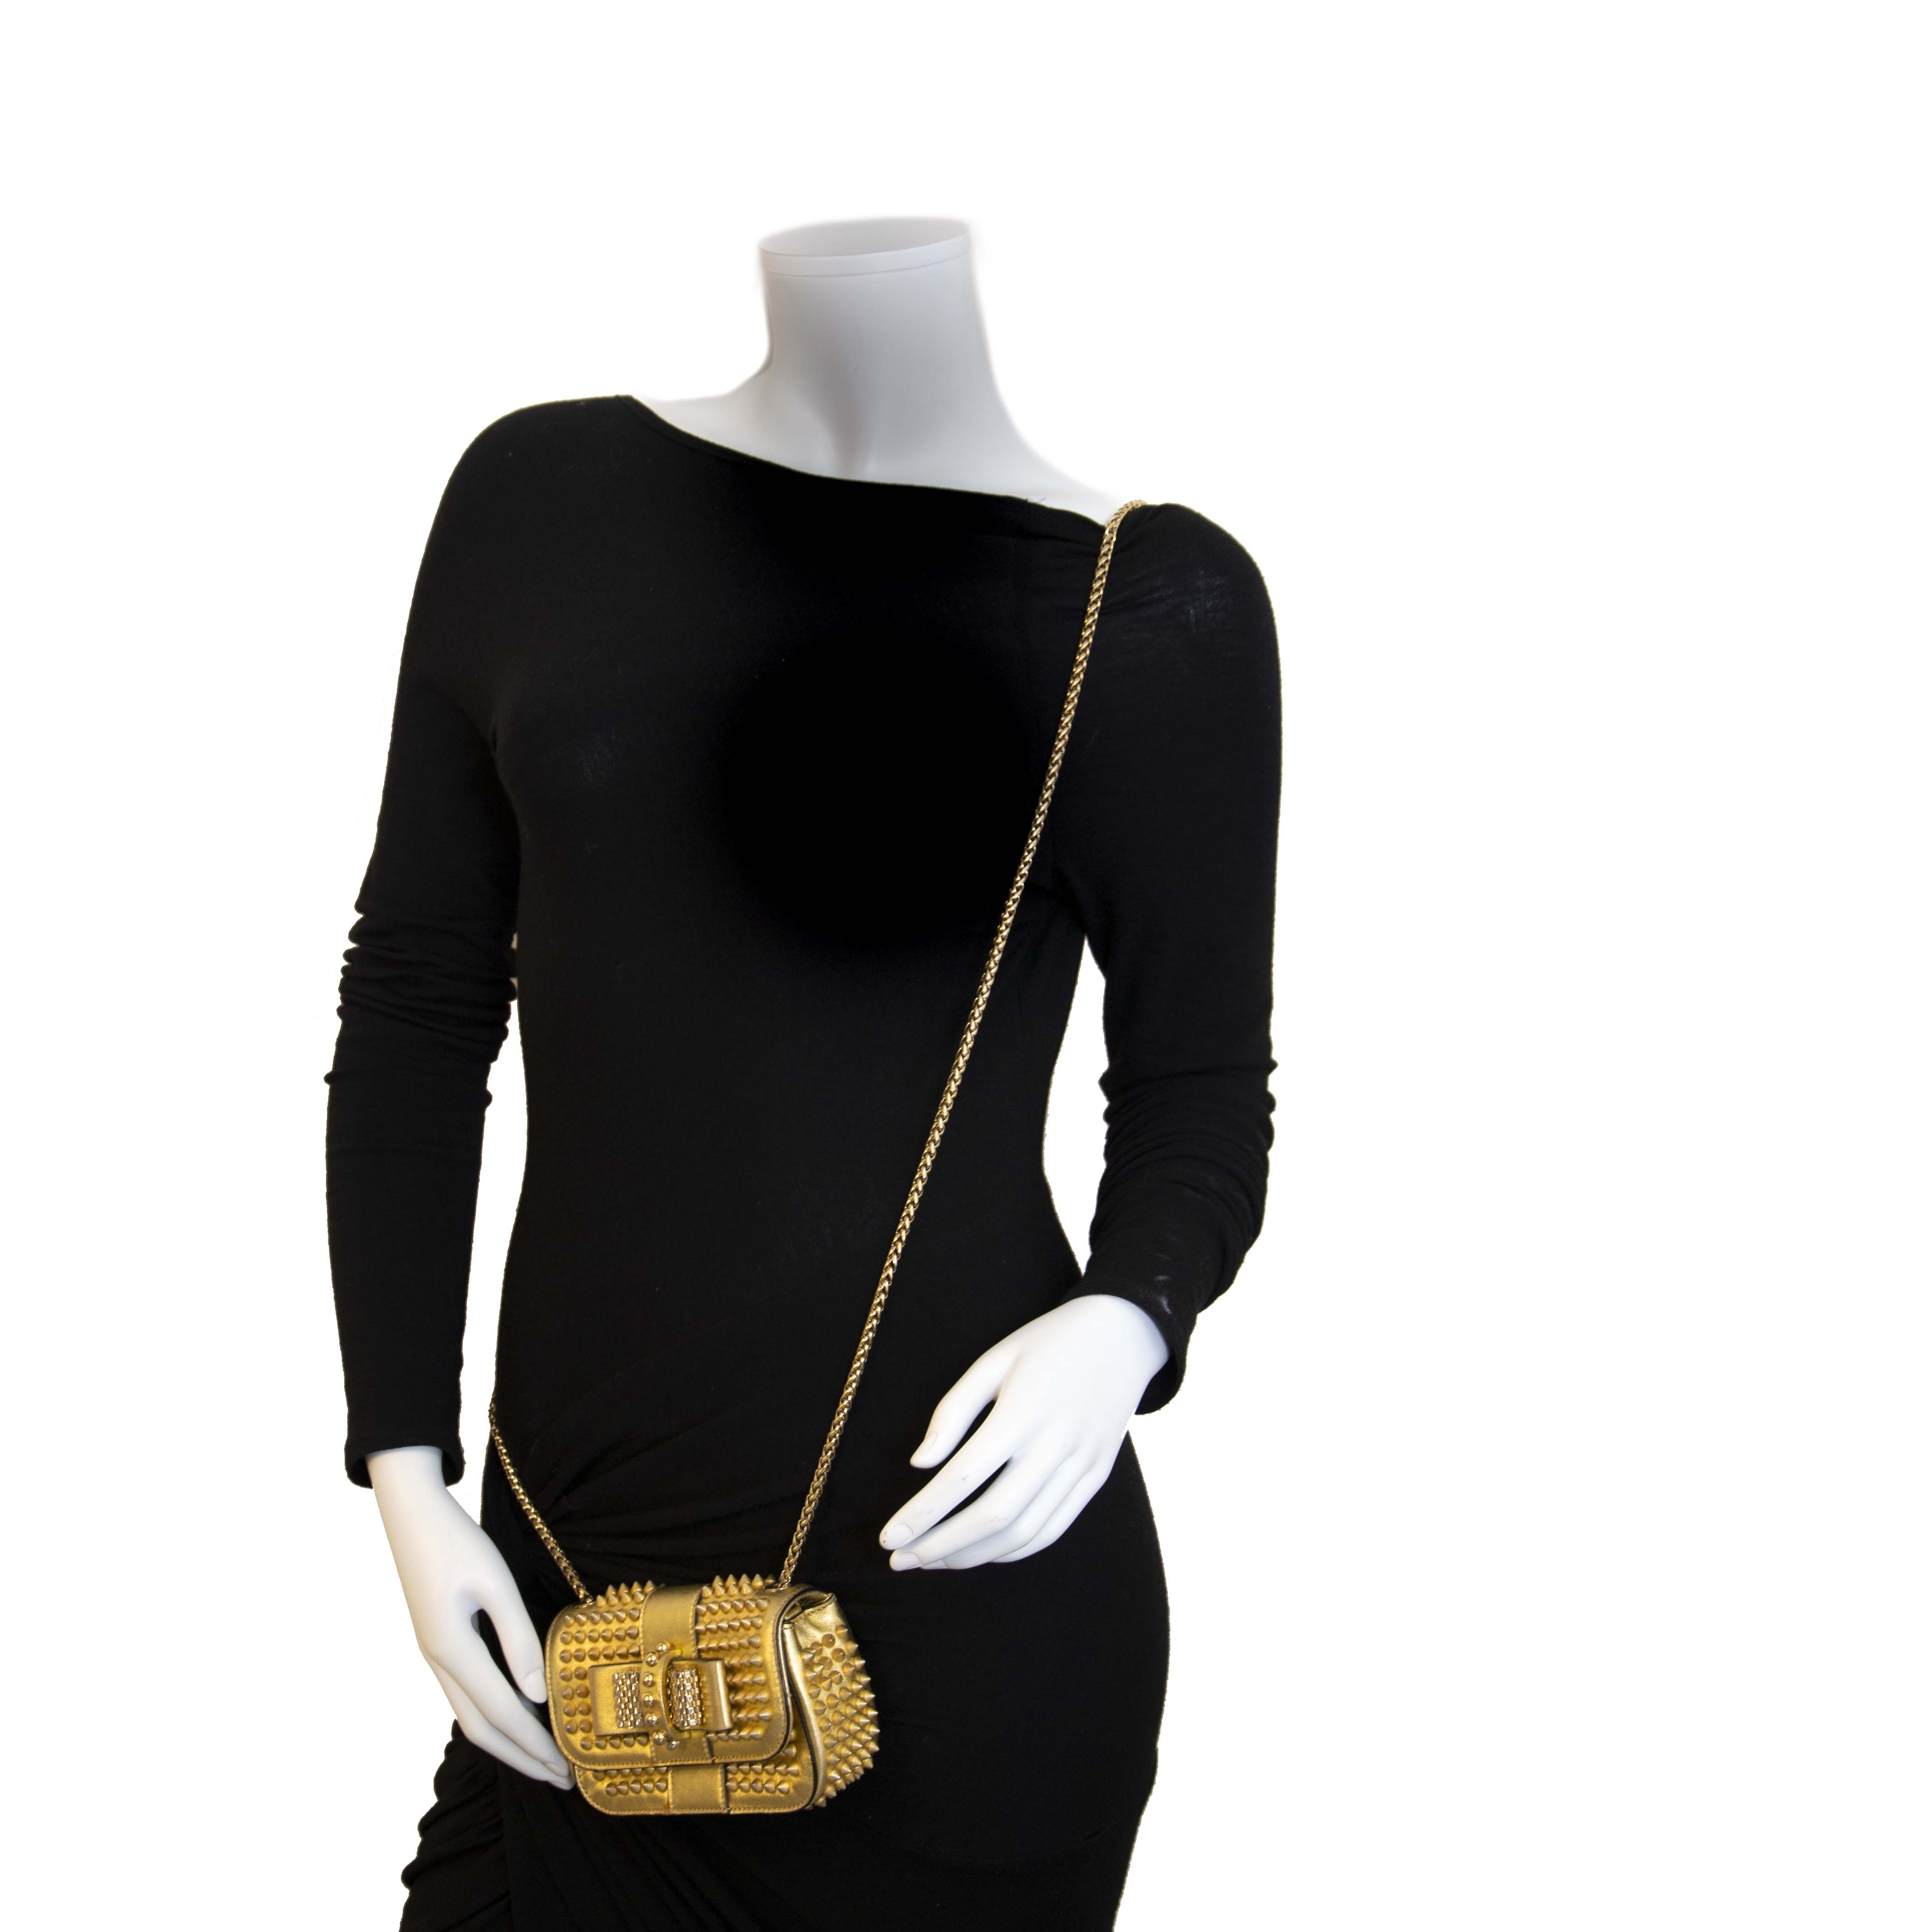 ceffd76120c0 Labellov Shoulder - Bags ○ Buy and Sell Authentic Luxury